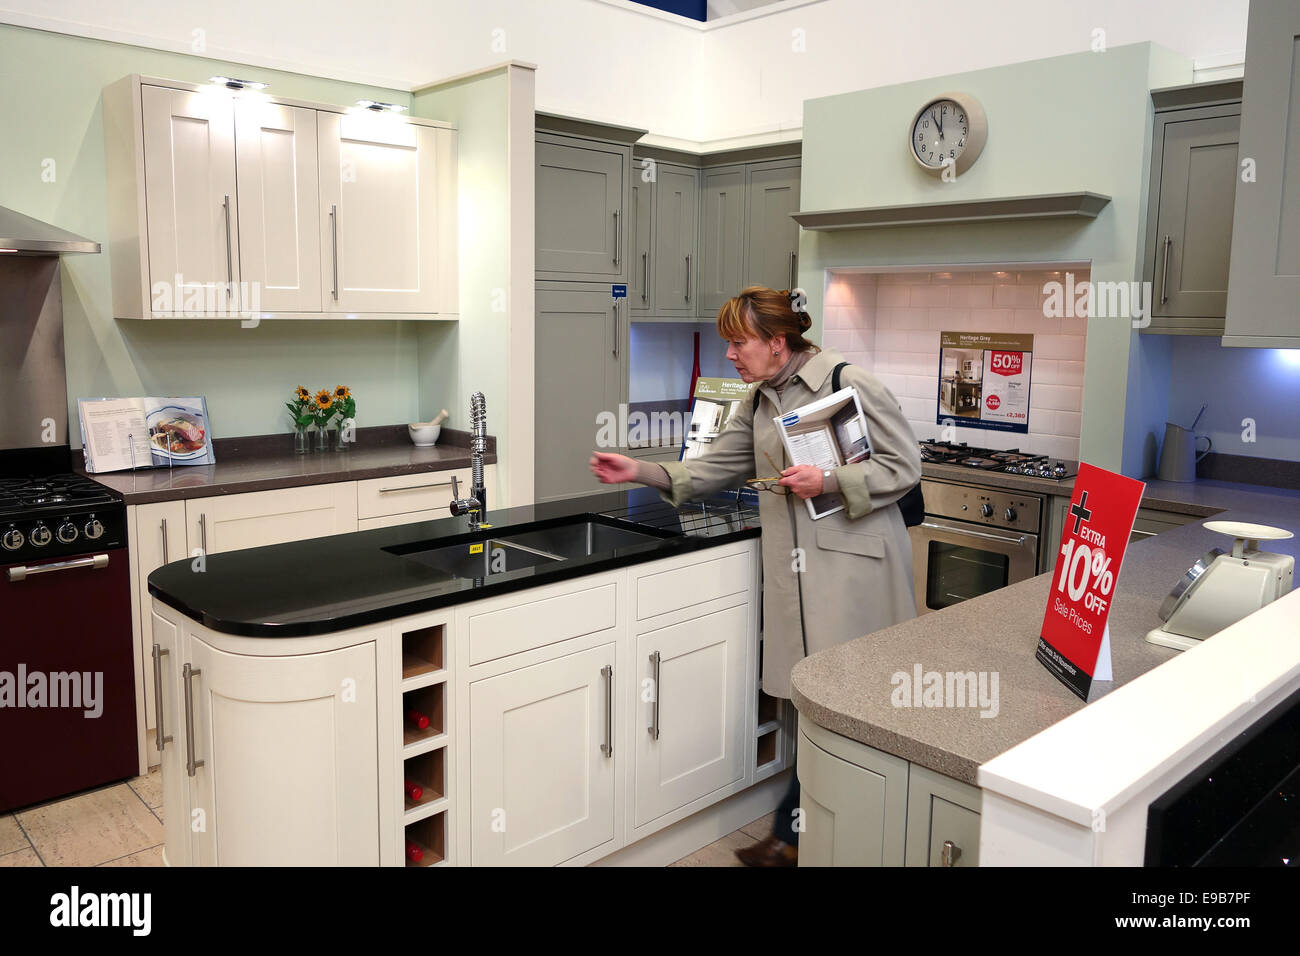 Uncategorized. Wickes Kitchen Appliances. wingsioskins Home Design